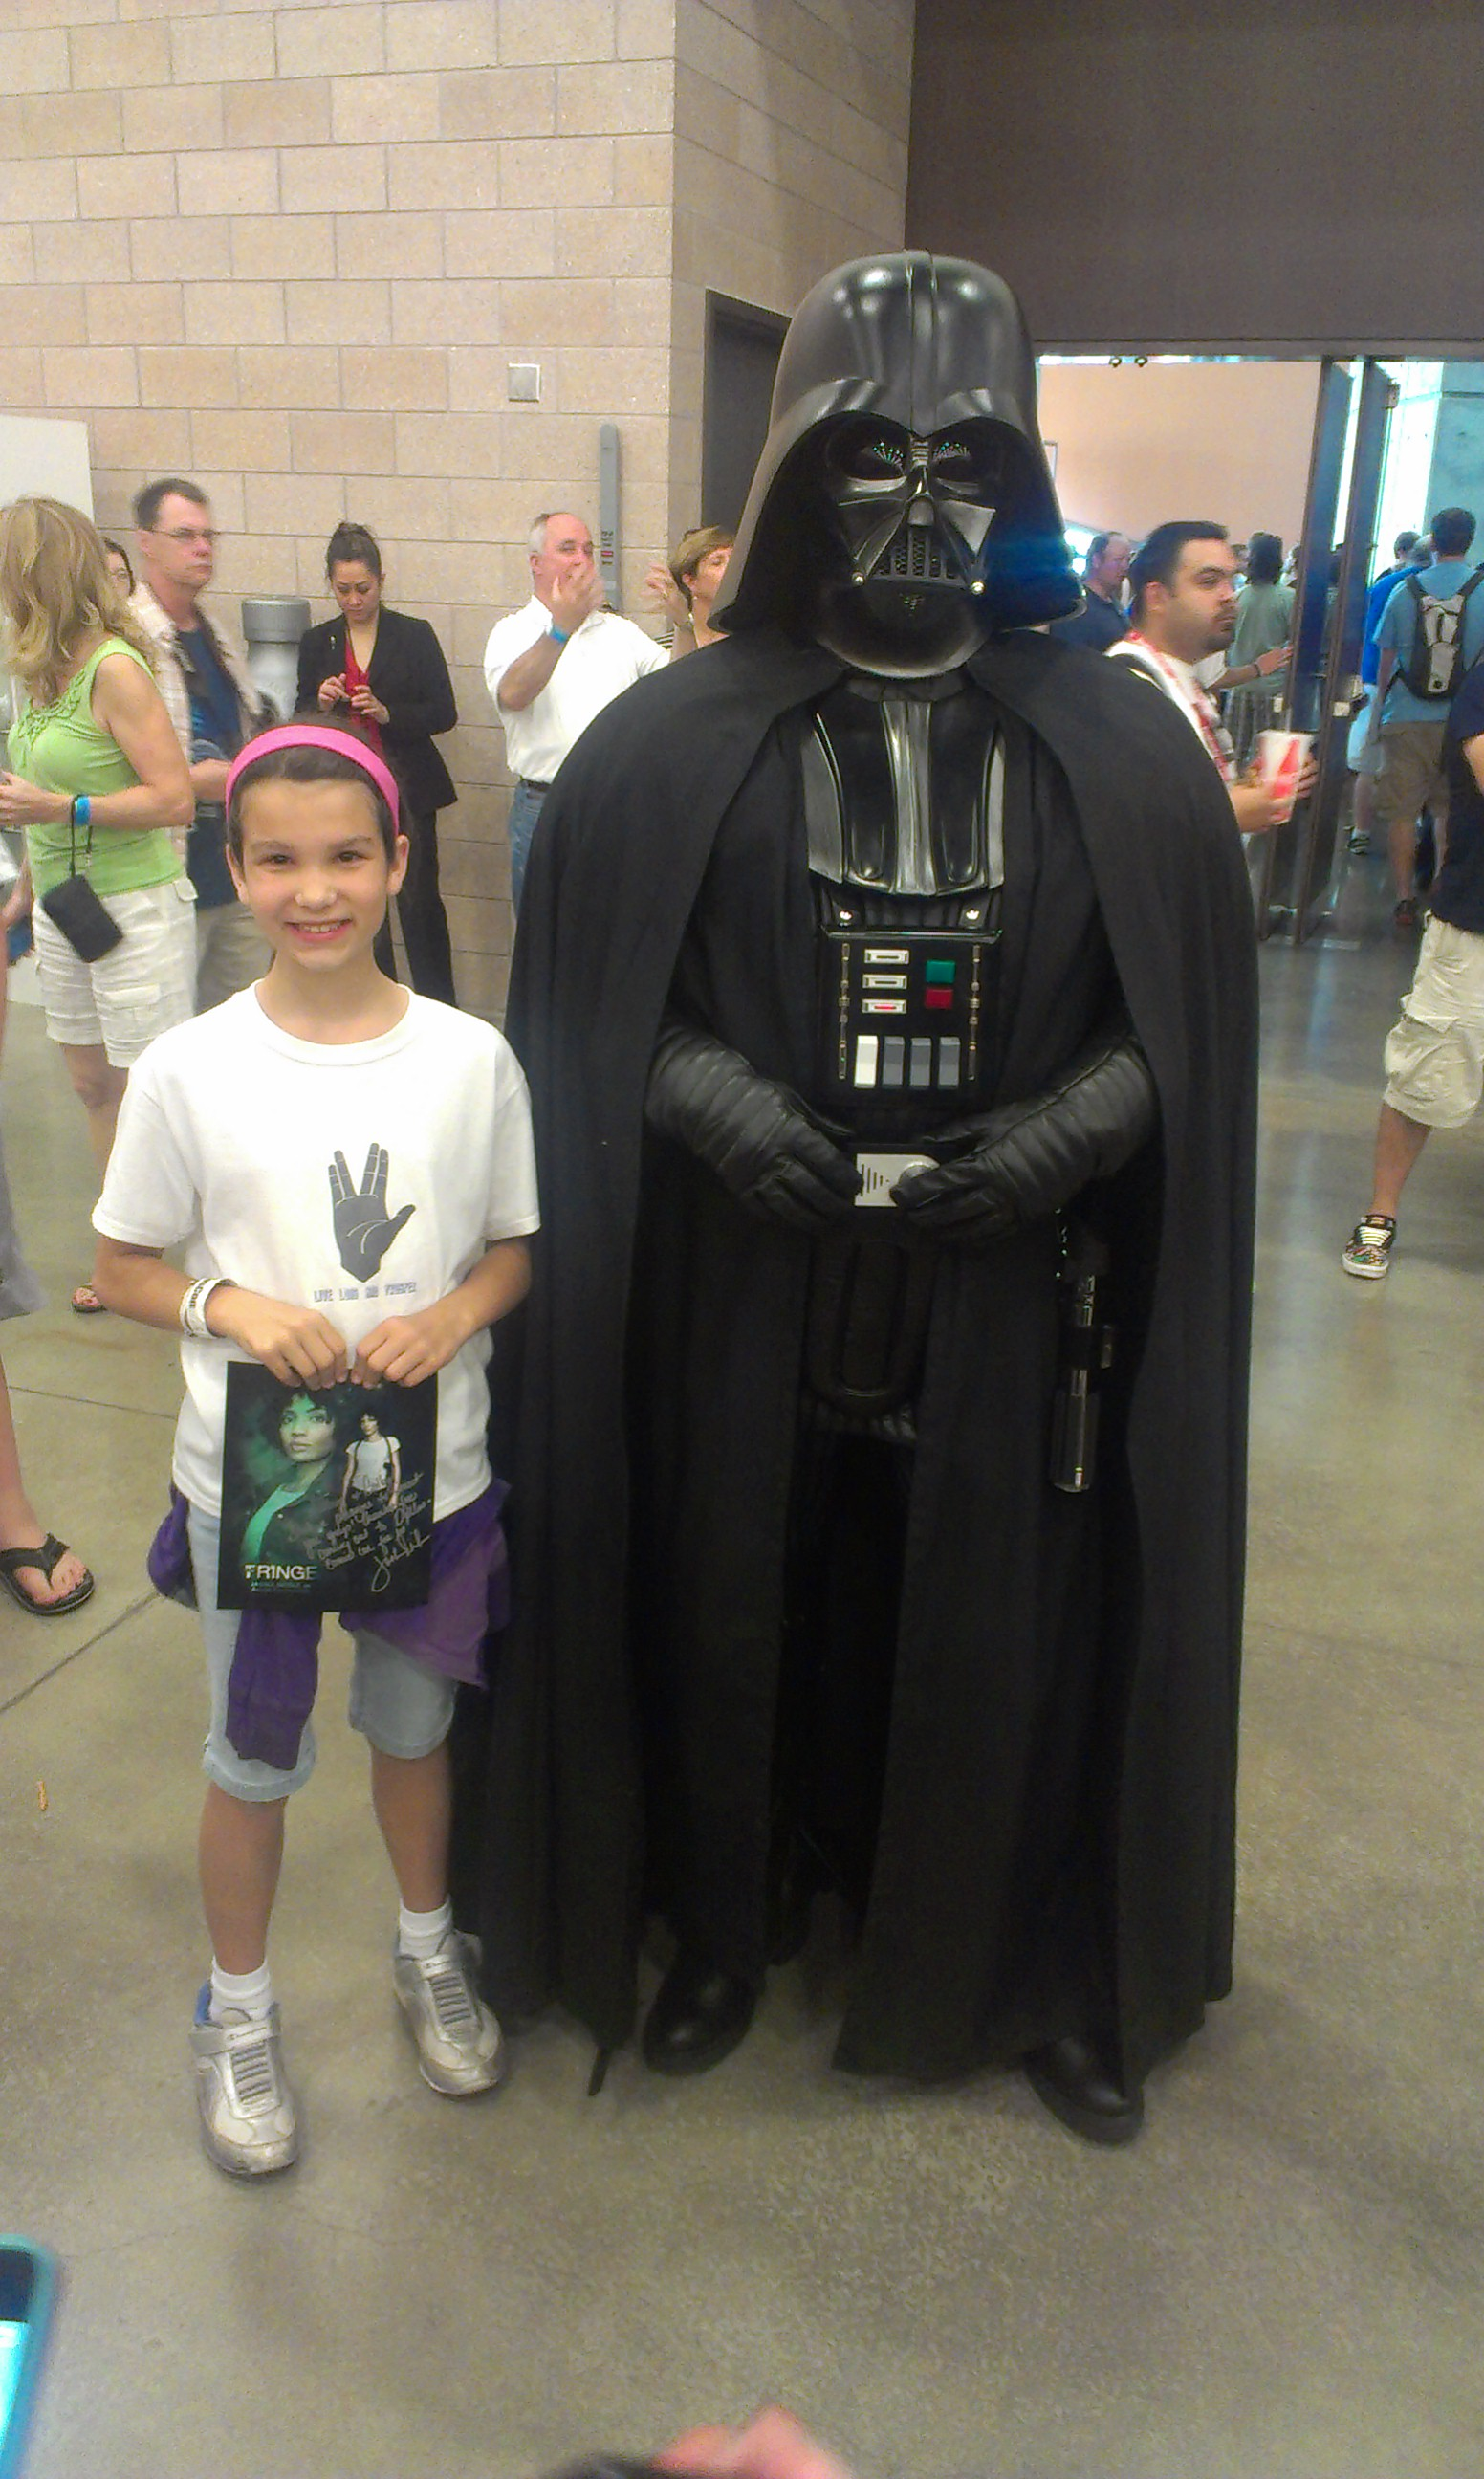 Addi and a great Darth Vader costume.